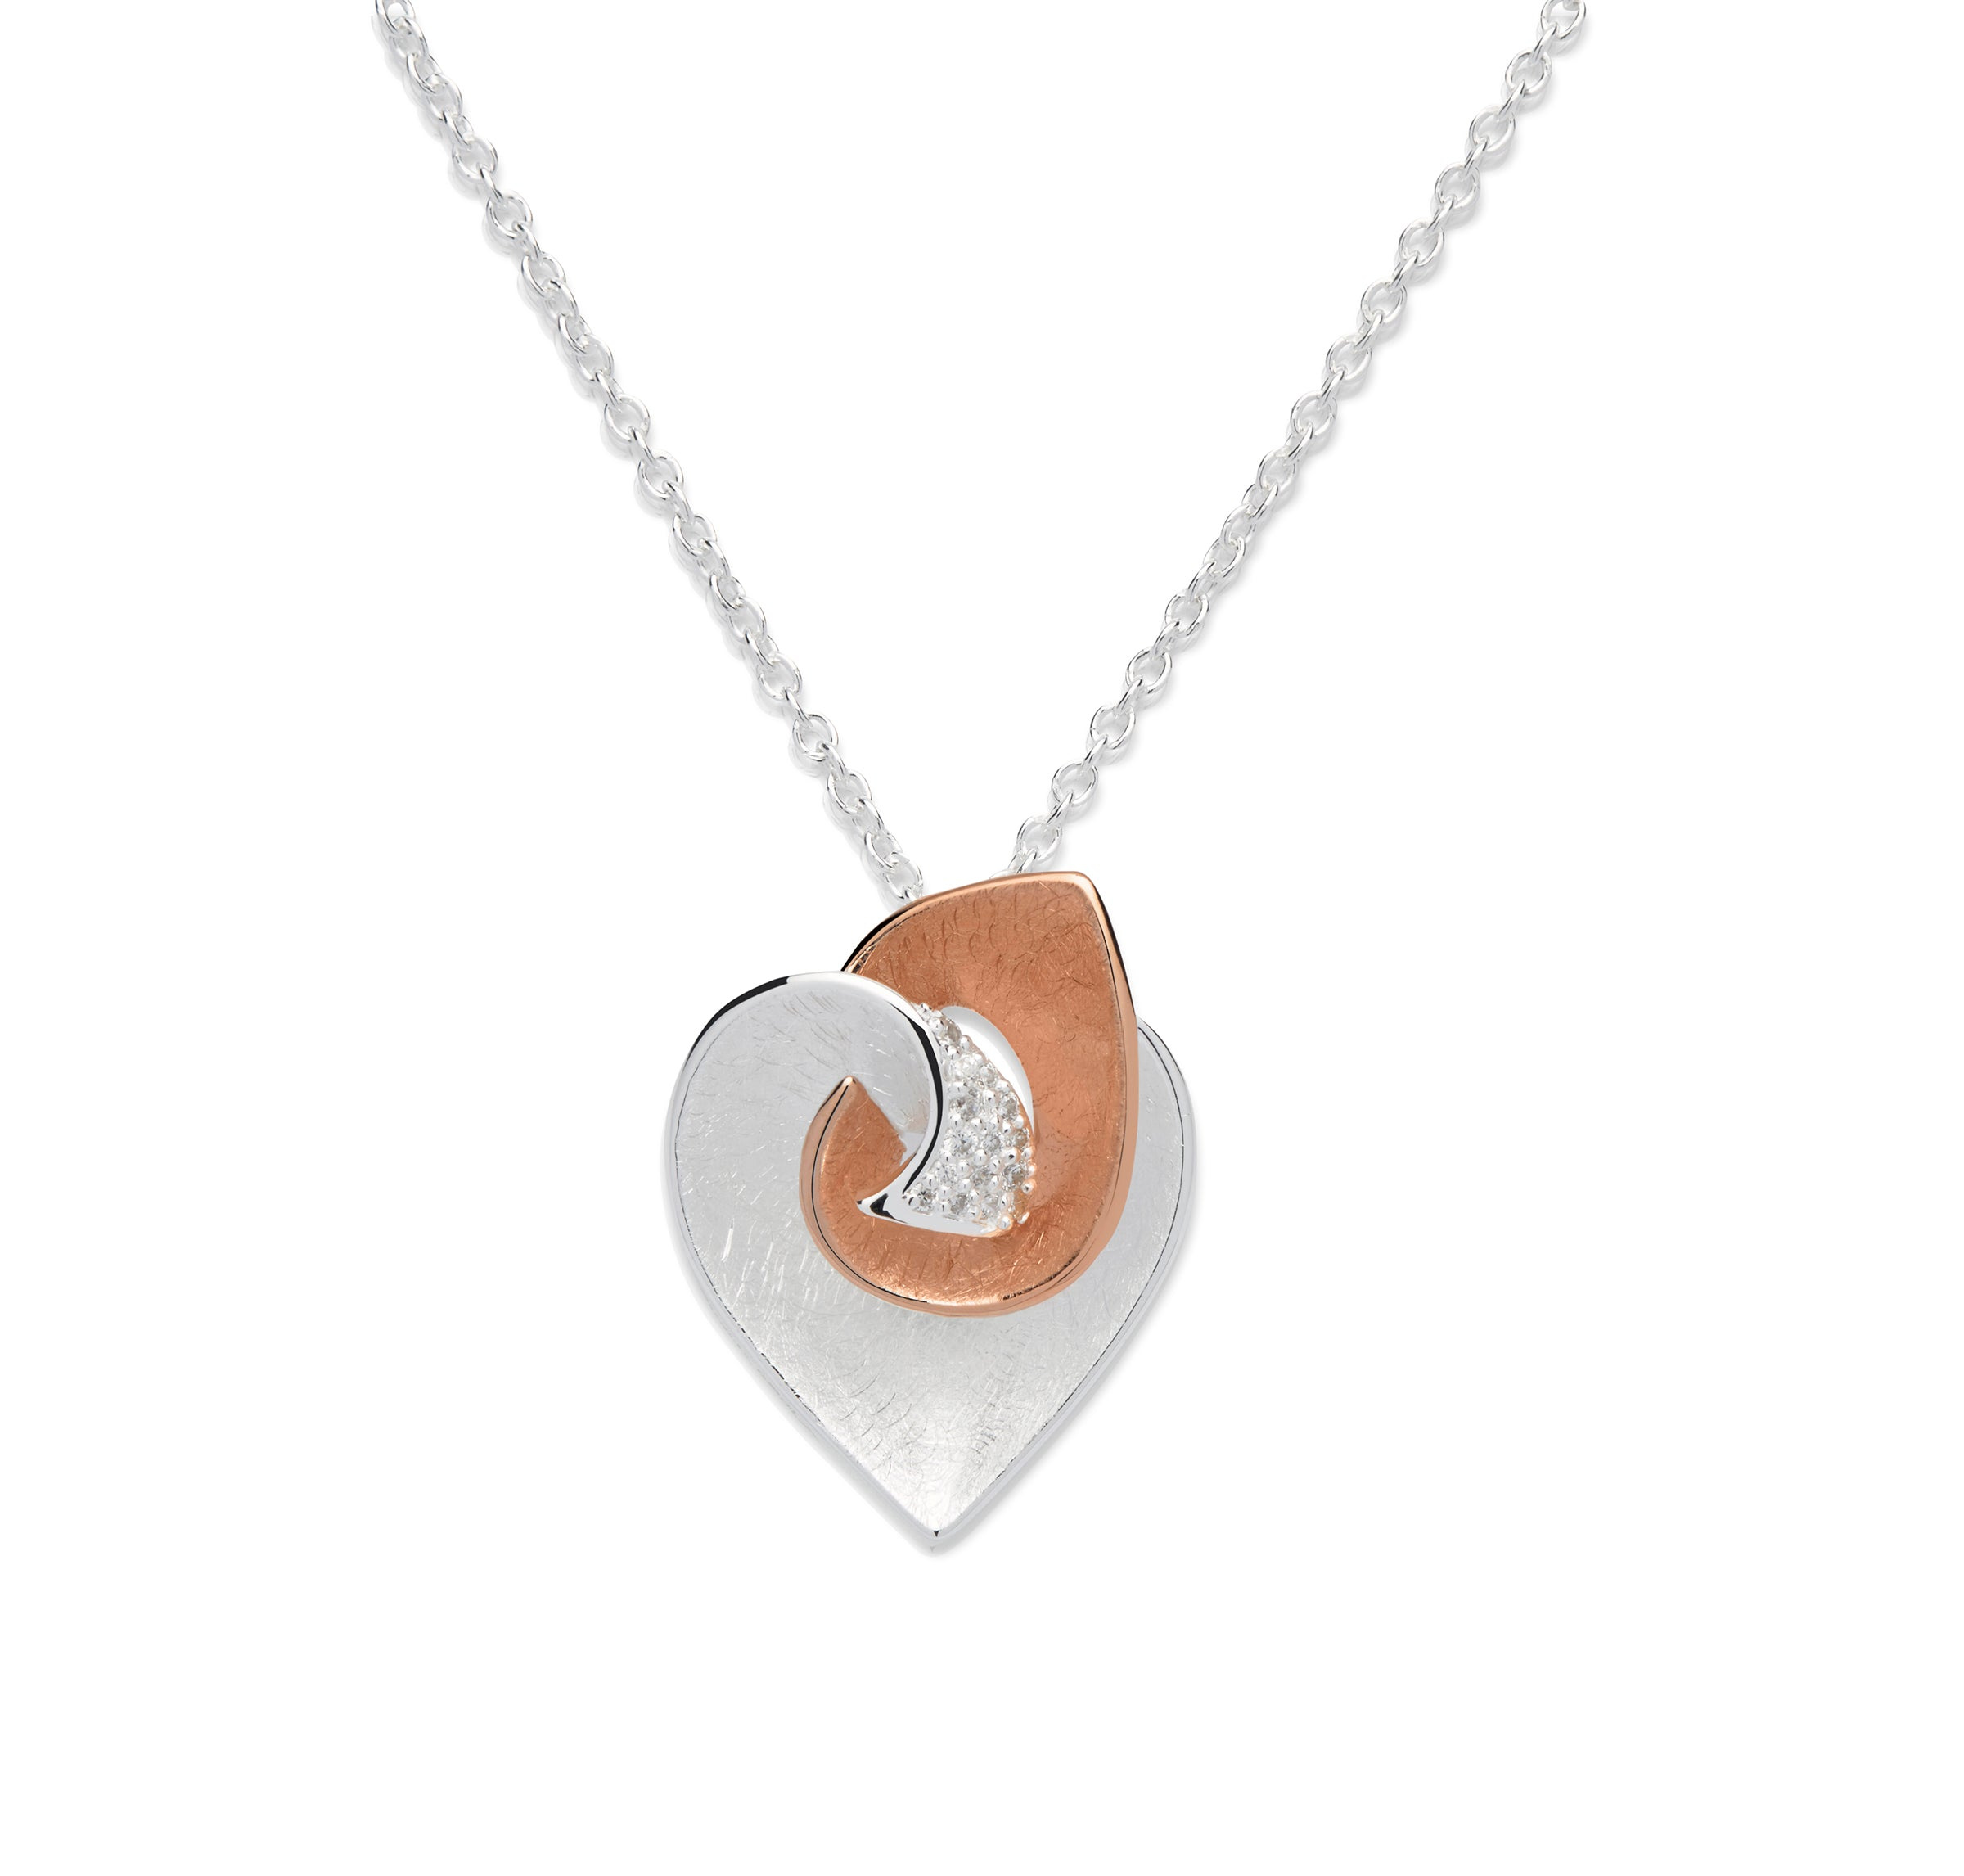 Sterling Silver and Rose Gold Plate CZ Heart Design Pendant and Chain